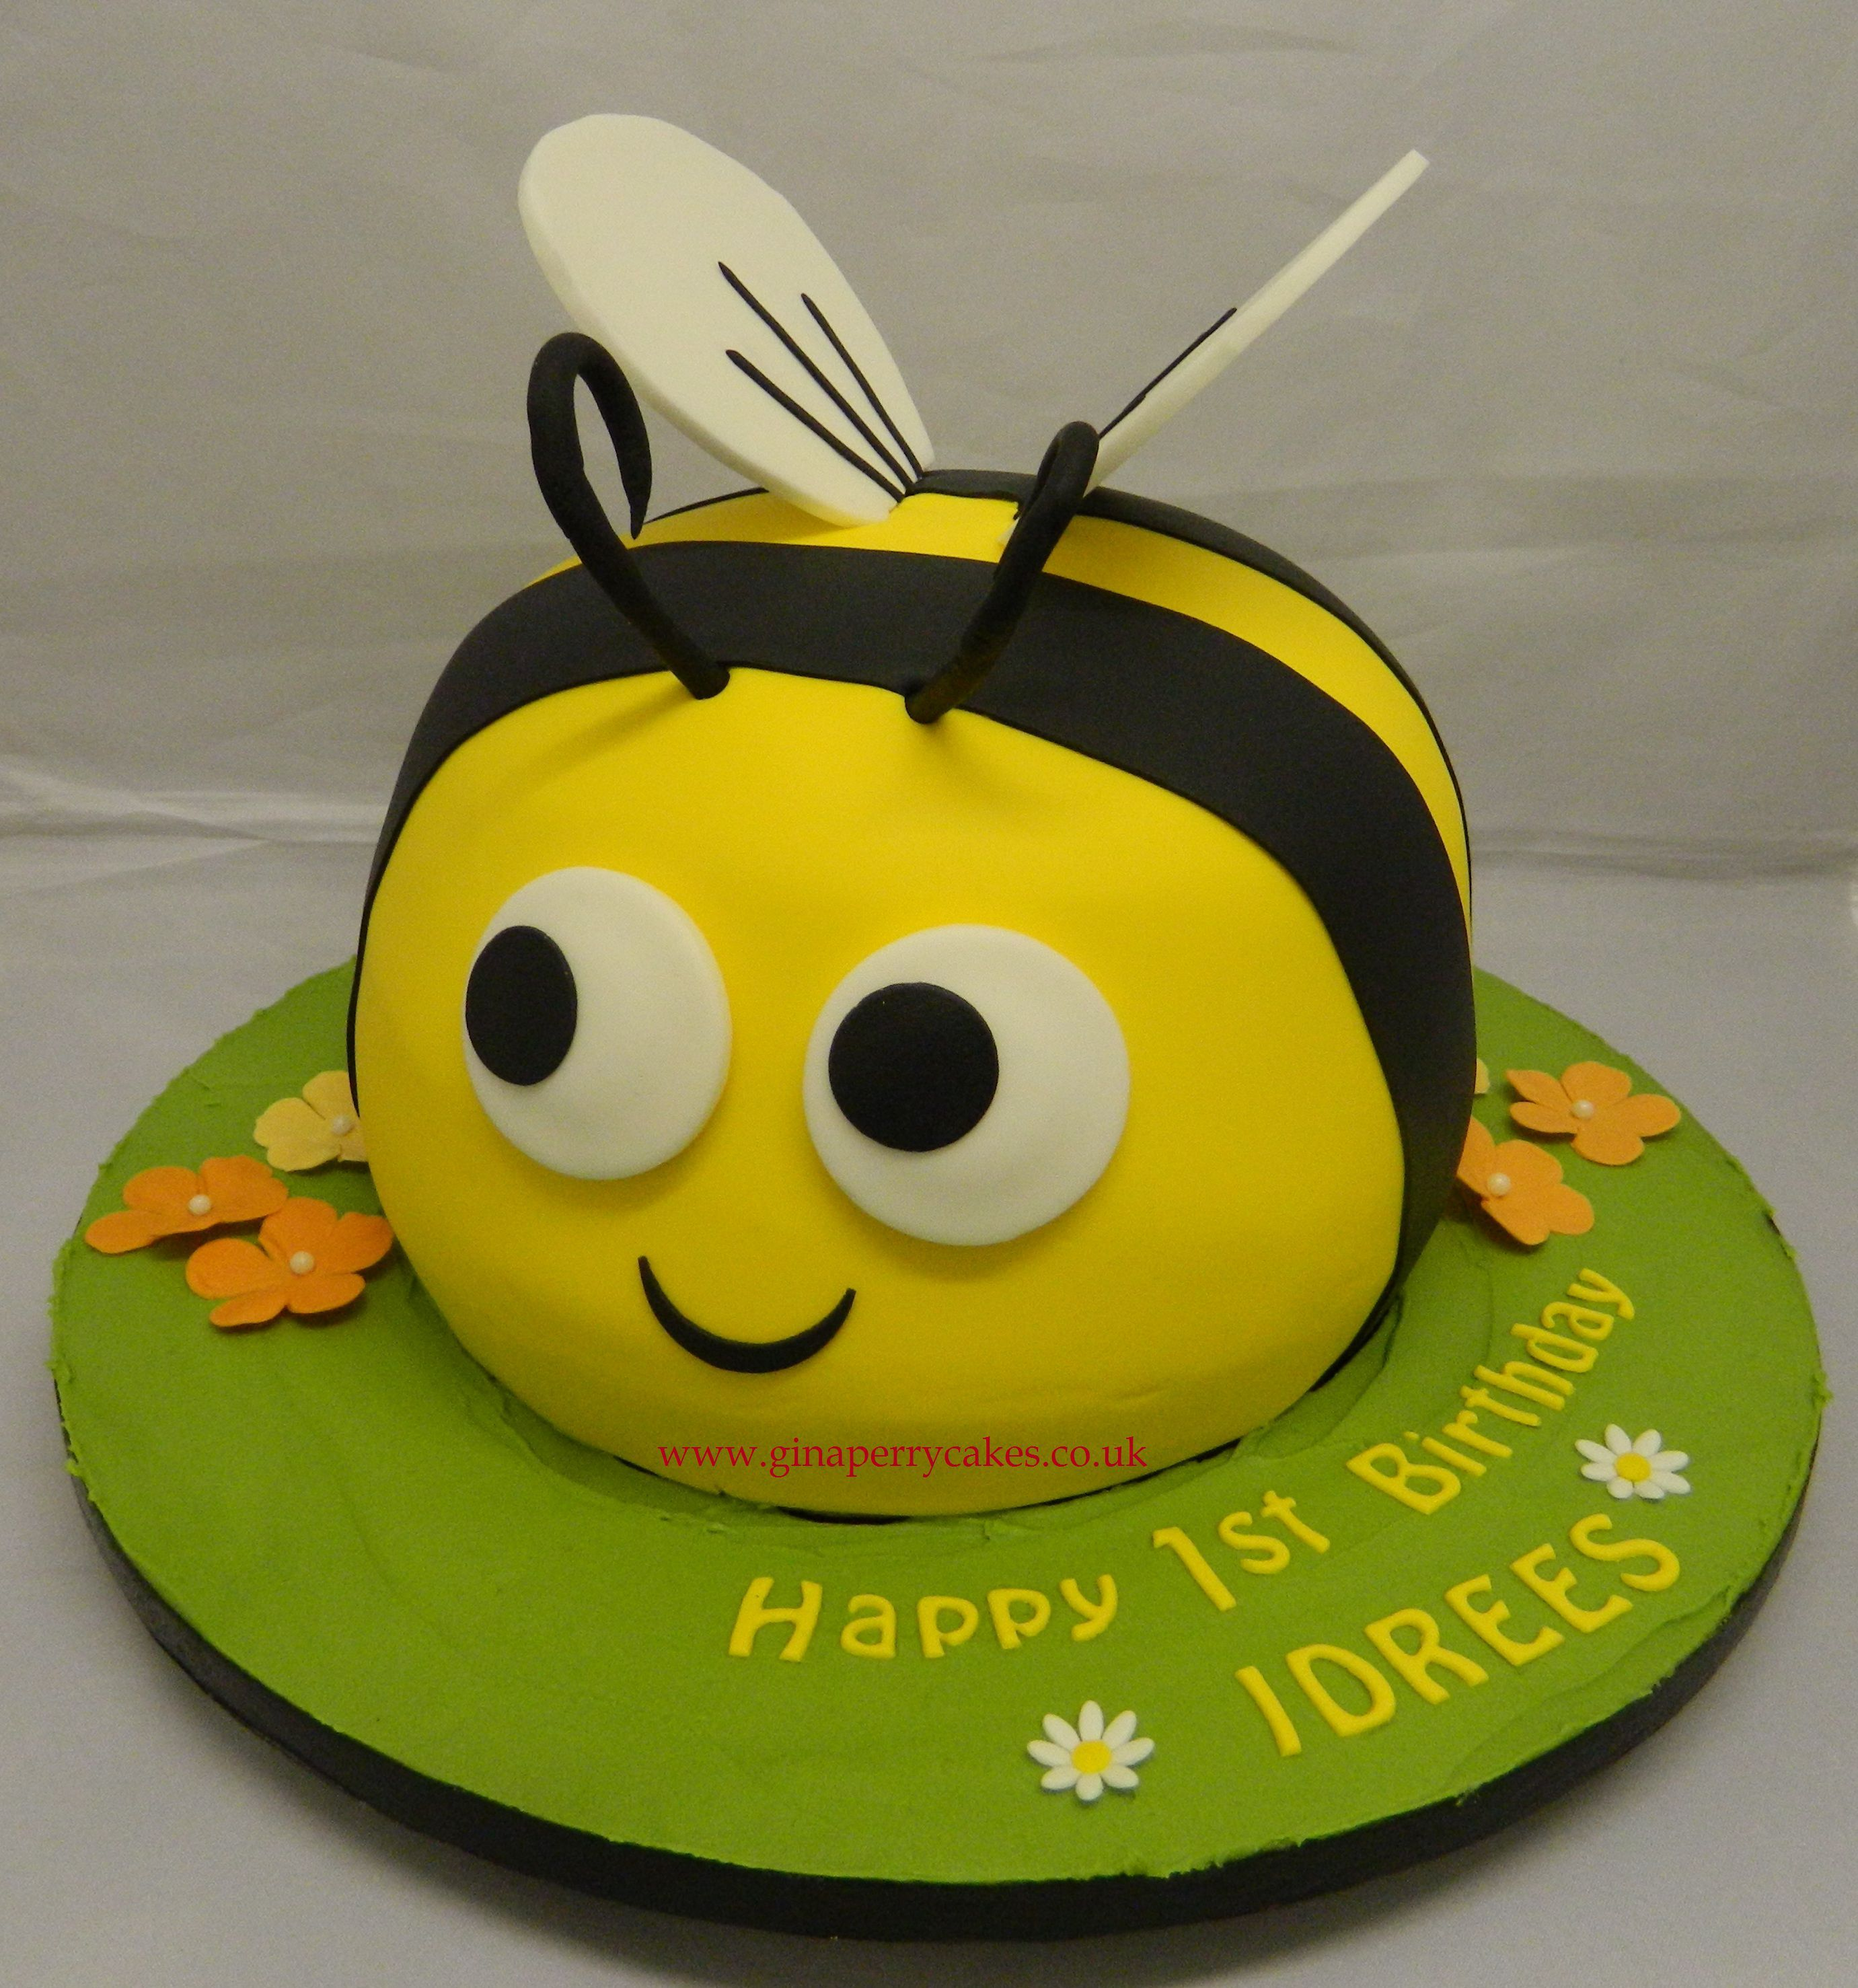 Busy Bee birthday cake for a 1 year old My Celebration Cakes